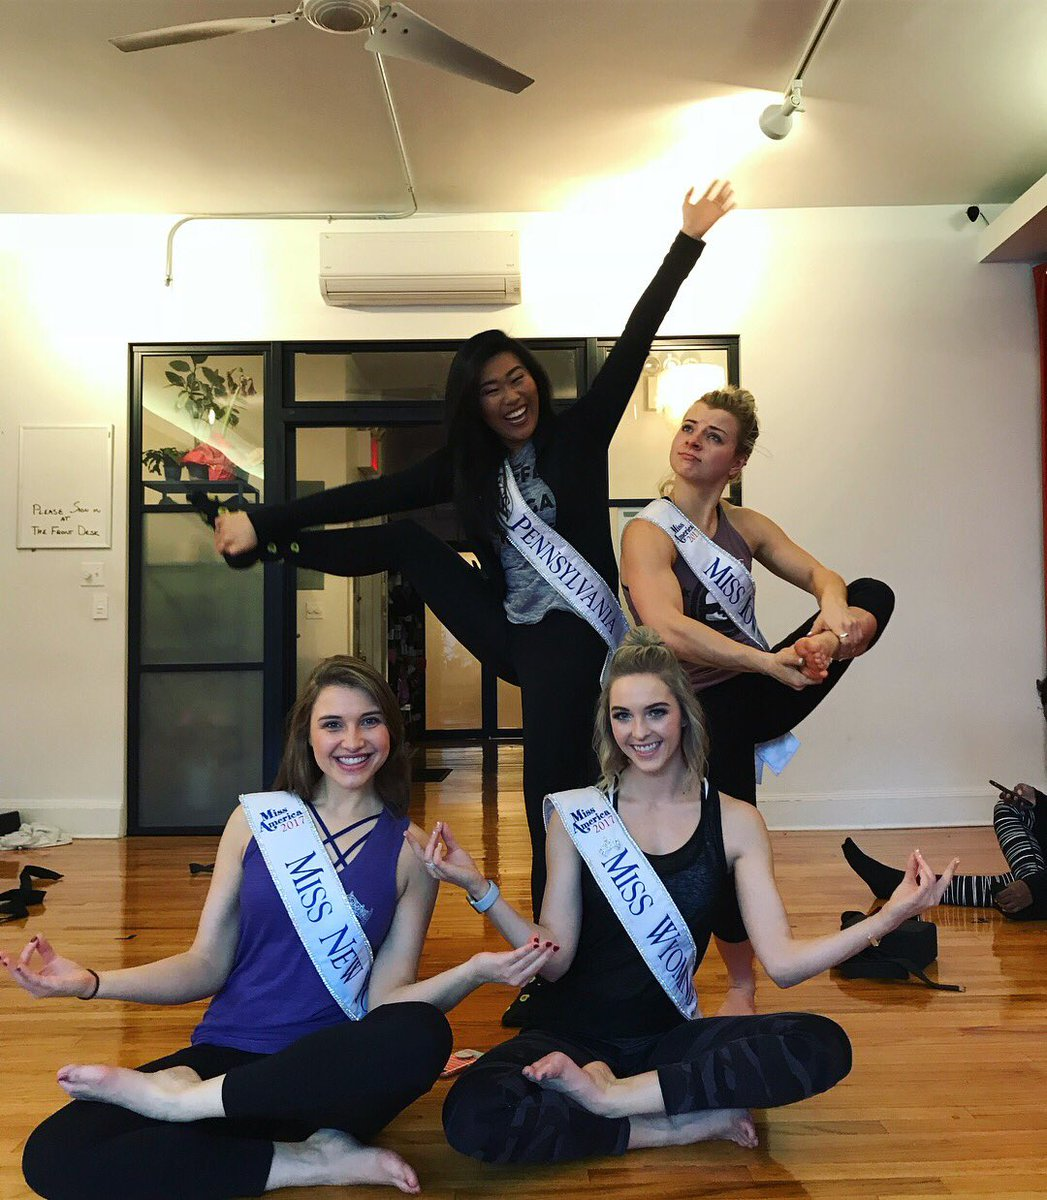 Miss New York On Twitter Are The Miss America Girls Working Hard Or Hardly Working Haha Feeling Refreshed And Rejuvenated After An Awesome Yoga Class At Sonicyoga Thank You Sonic Yoga